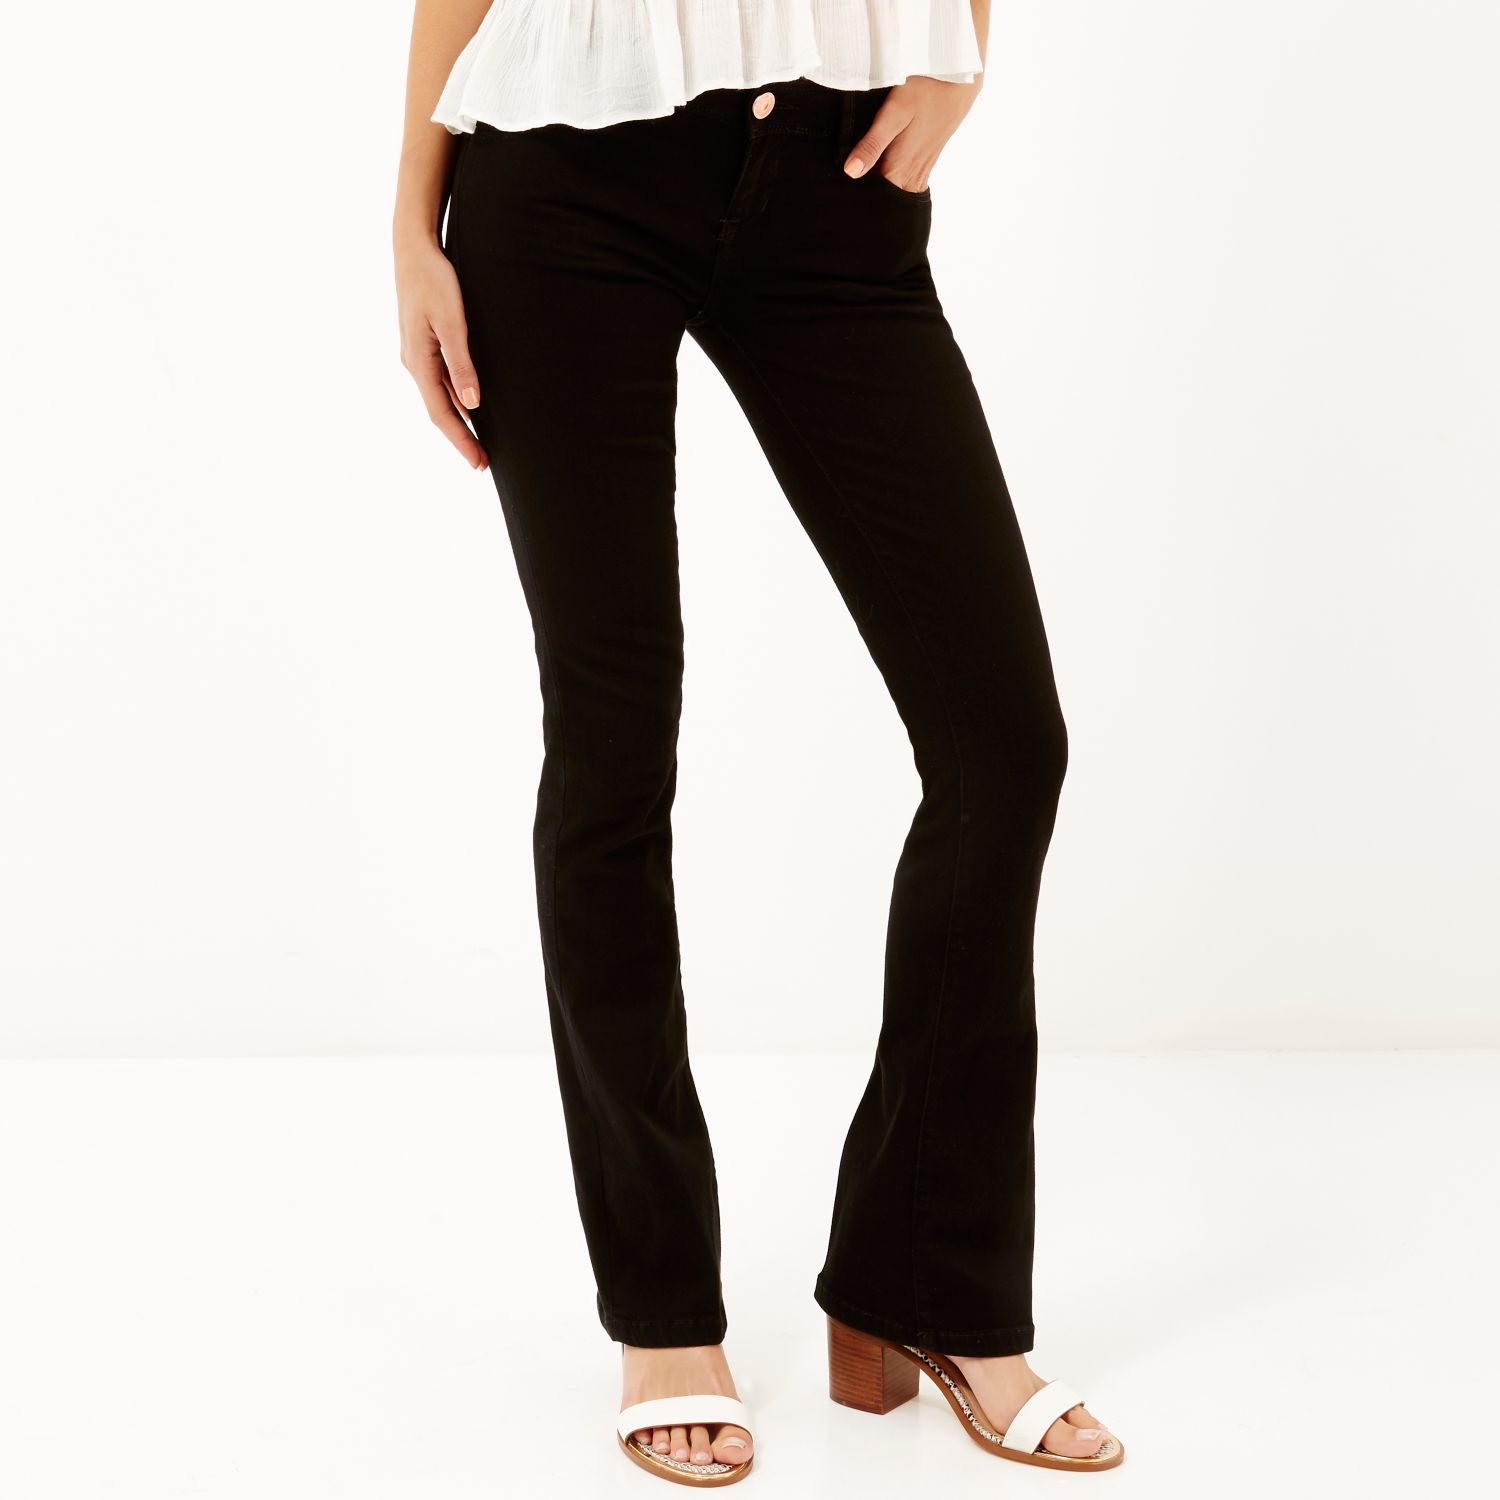 Bootcut jeans are back with wear-with-anything ease. With an extra-streamlined finish, Talbots loves the way this cut stretches and shapes.